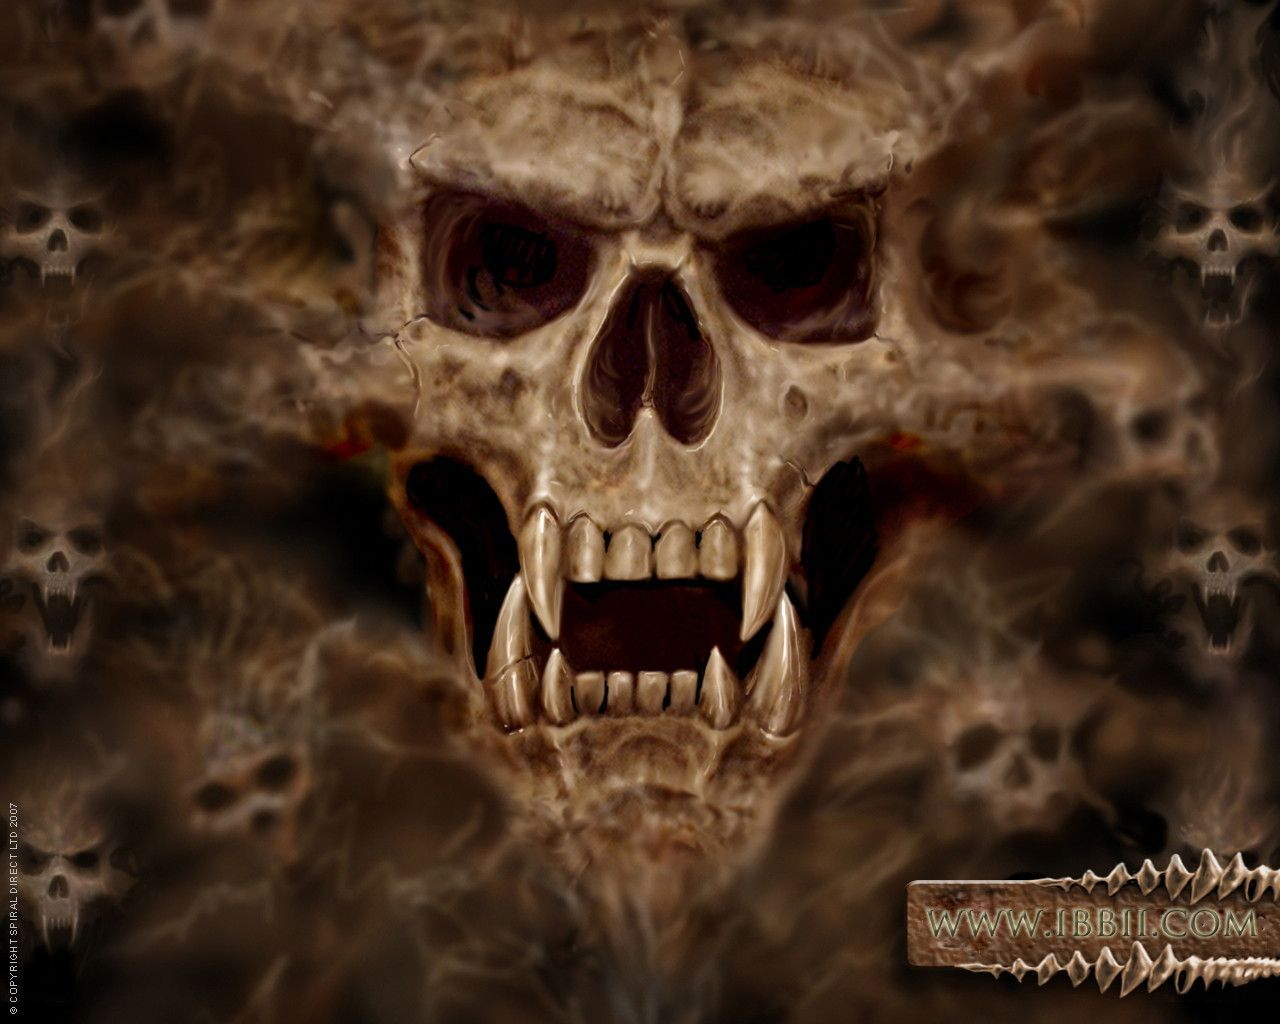 Vampire Skull Wallpapers - Wallpaper Cave